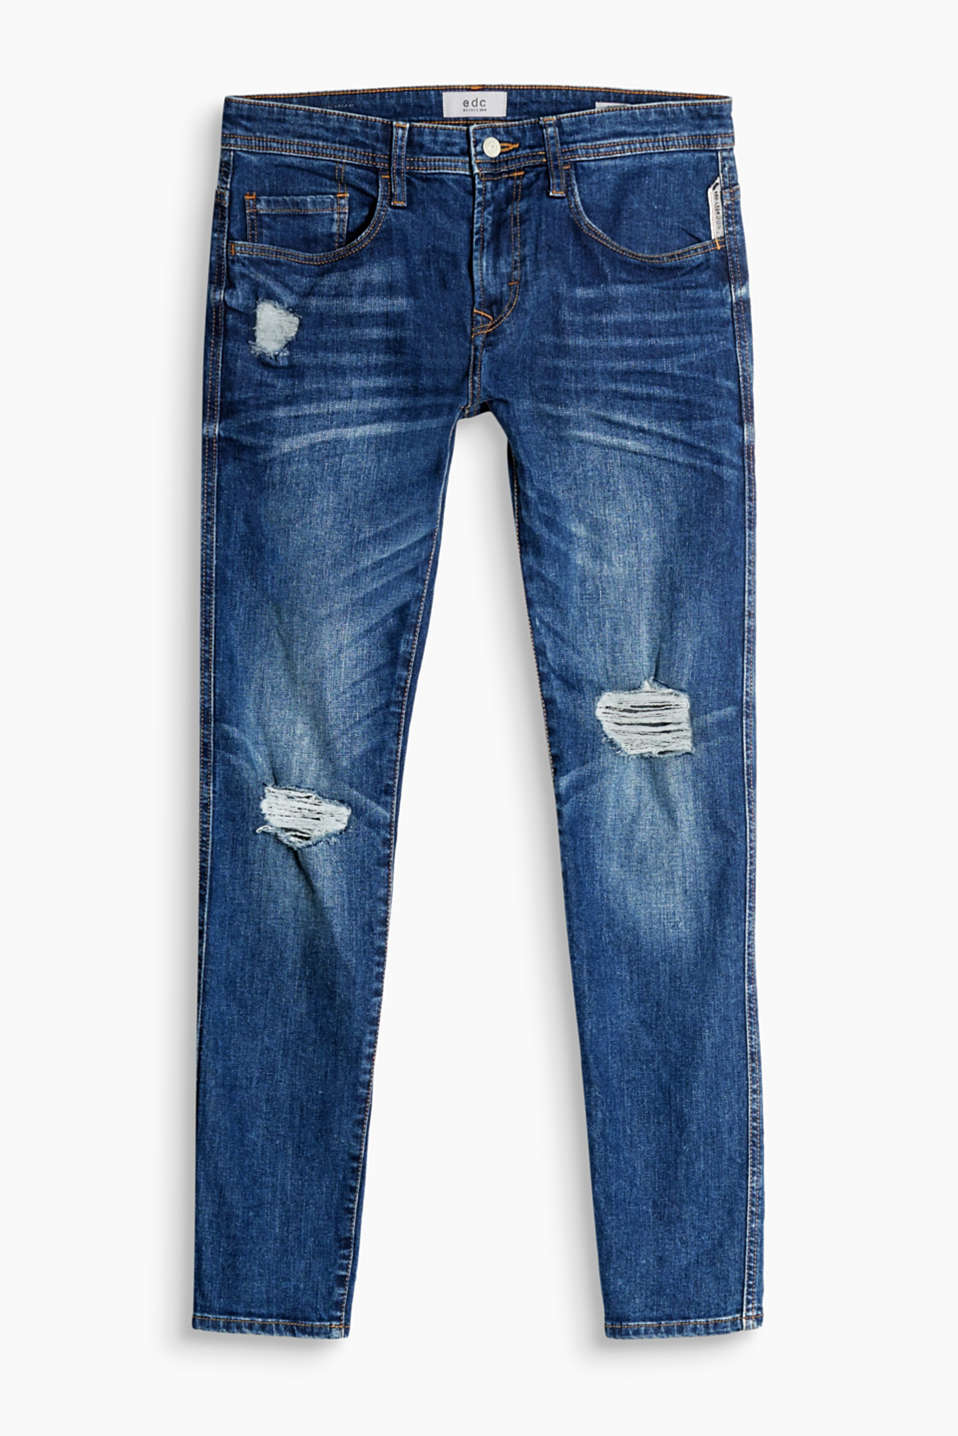 I bomuldsdenim med stretchkomfort: 5 pocket-jeans med destroyed-effekter